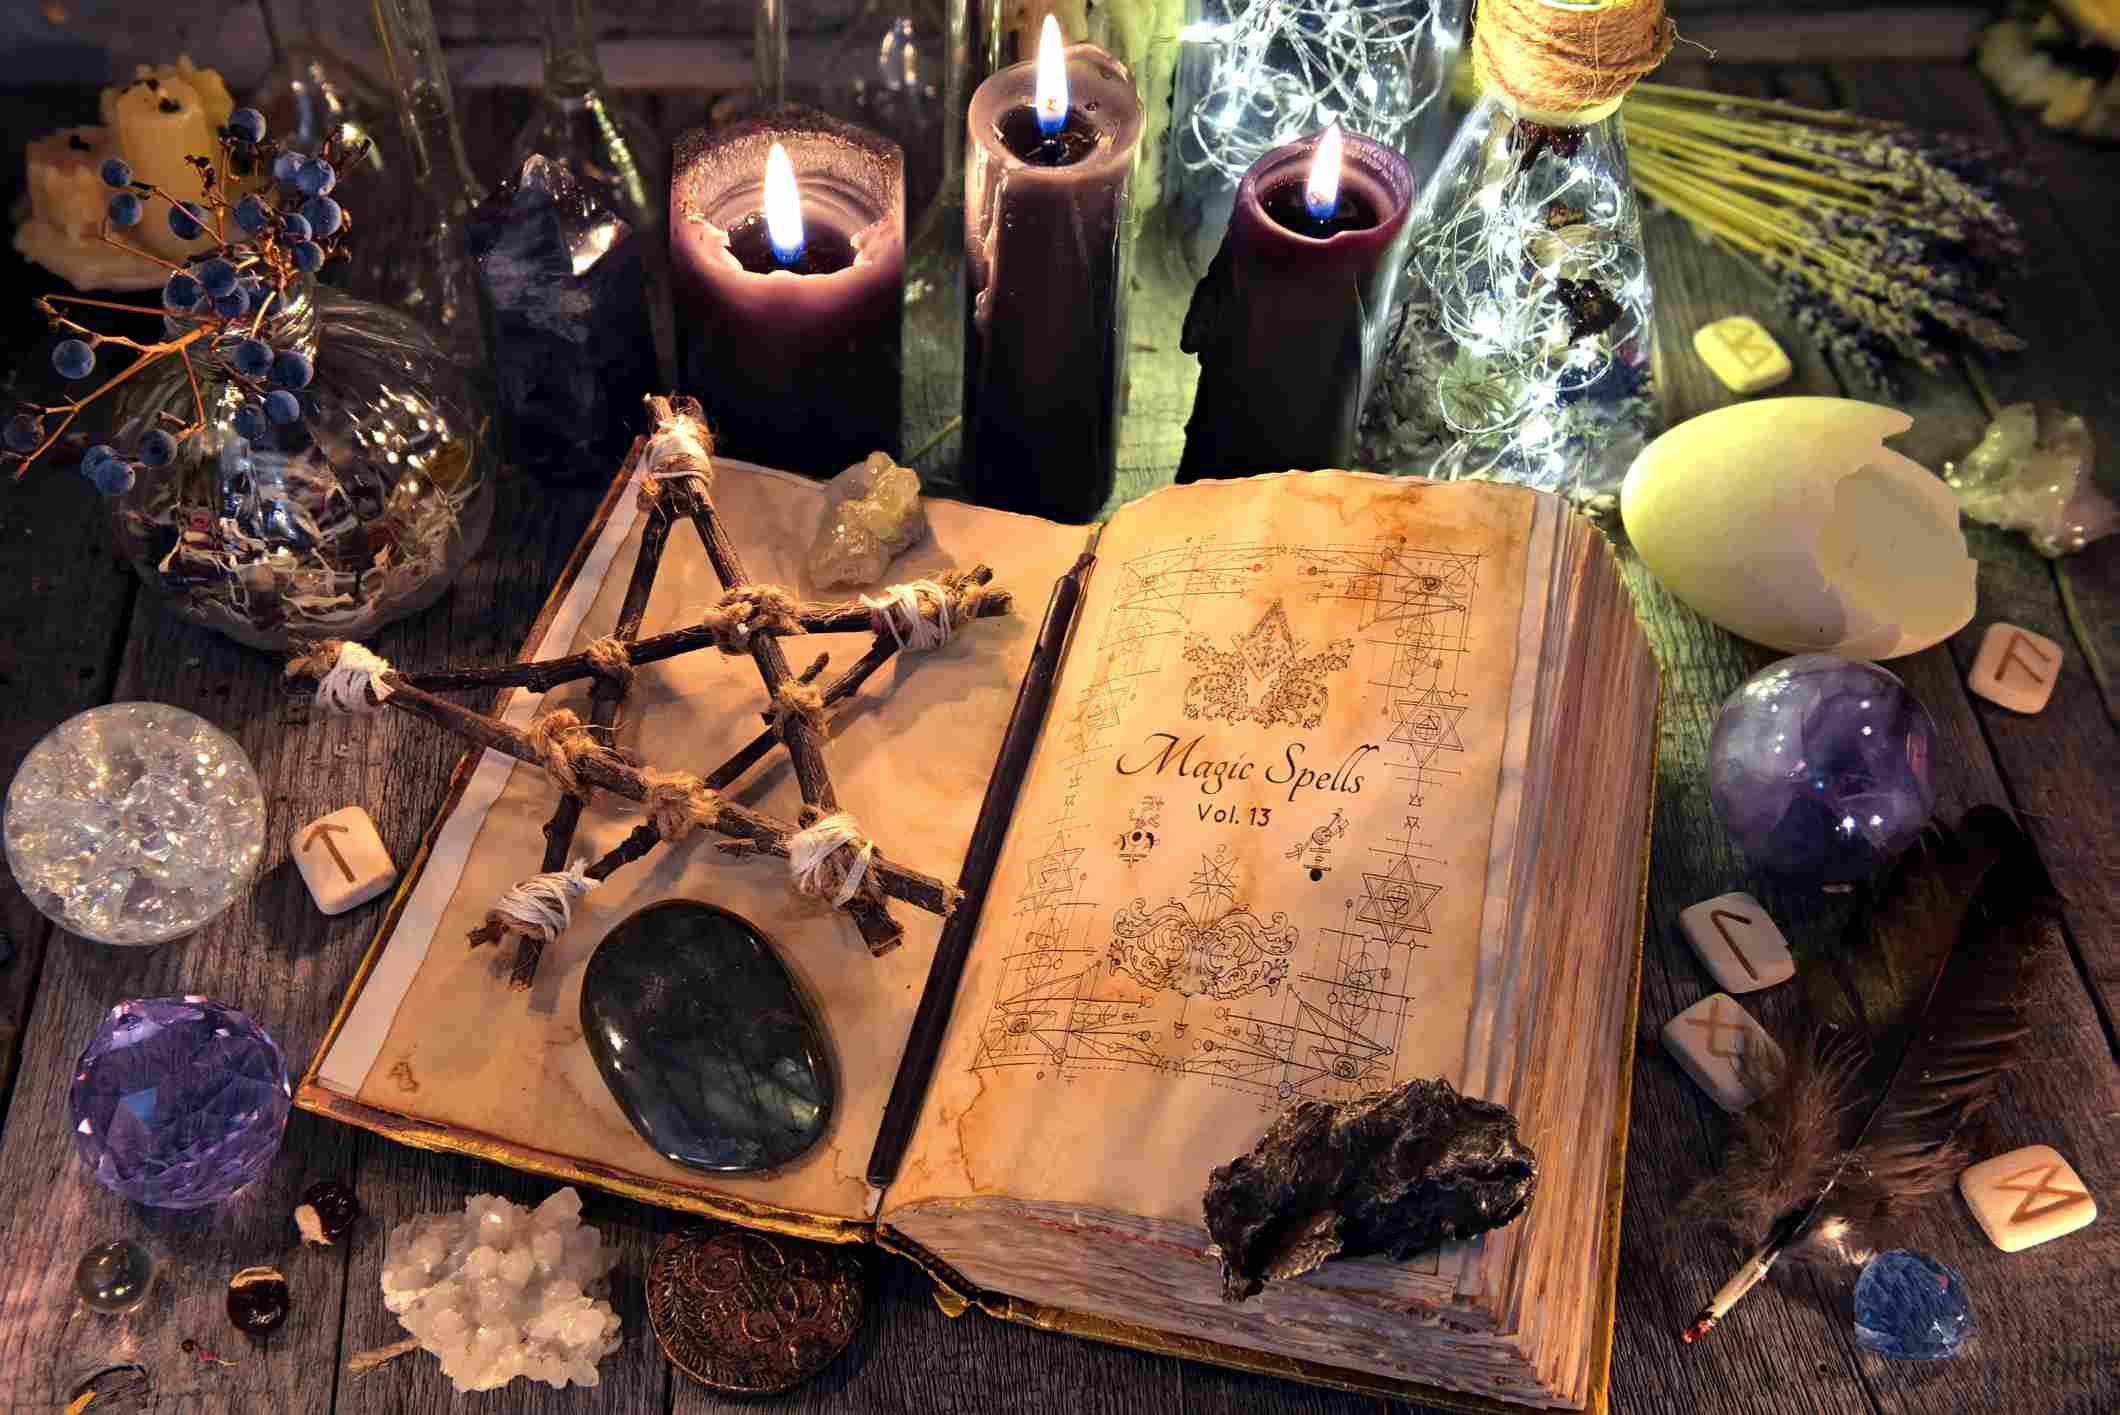 Old witch book with pentagram, black candles, crystals and ritual objects